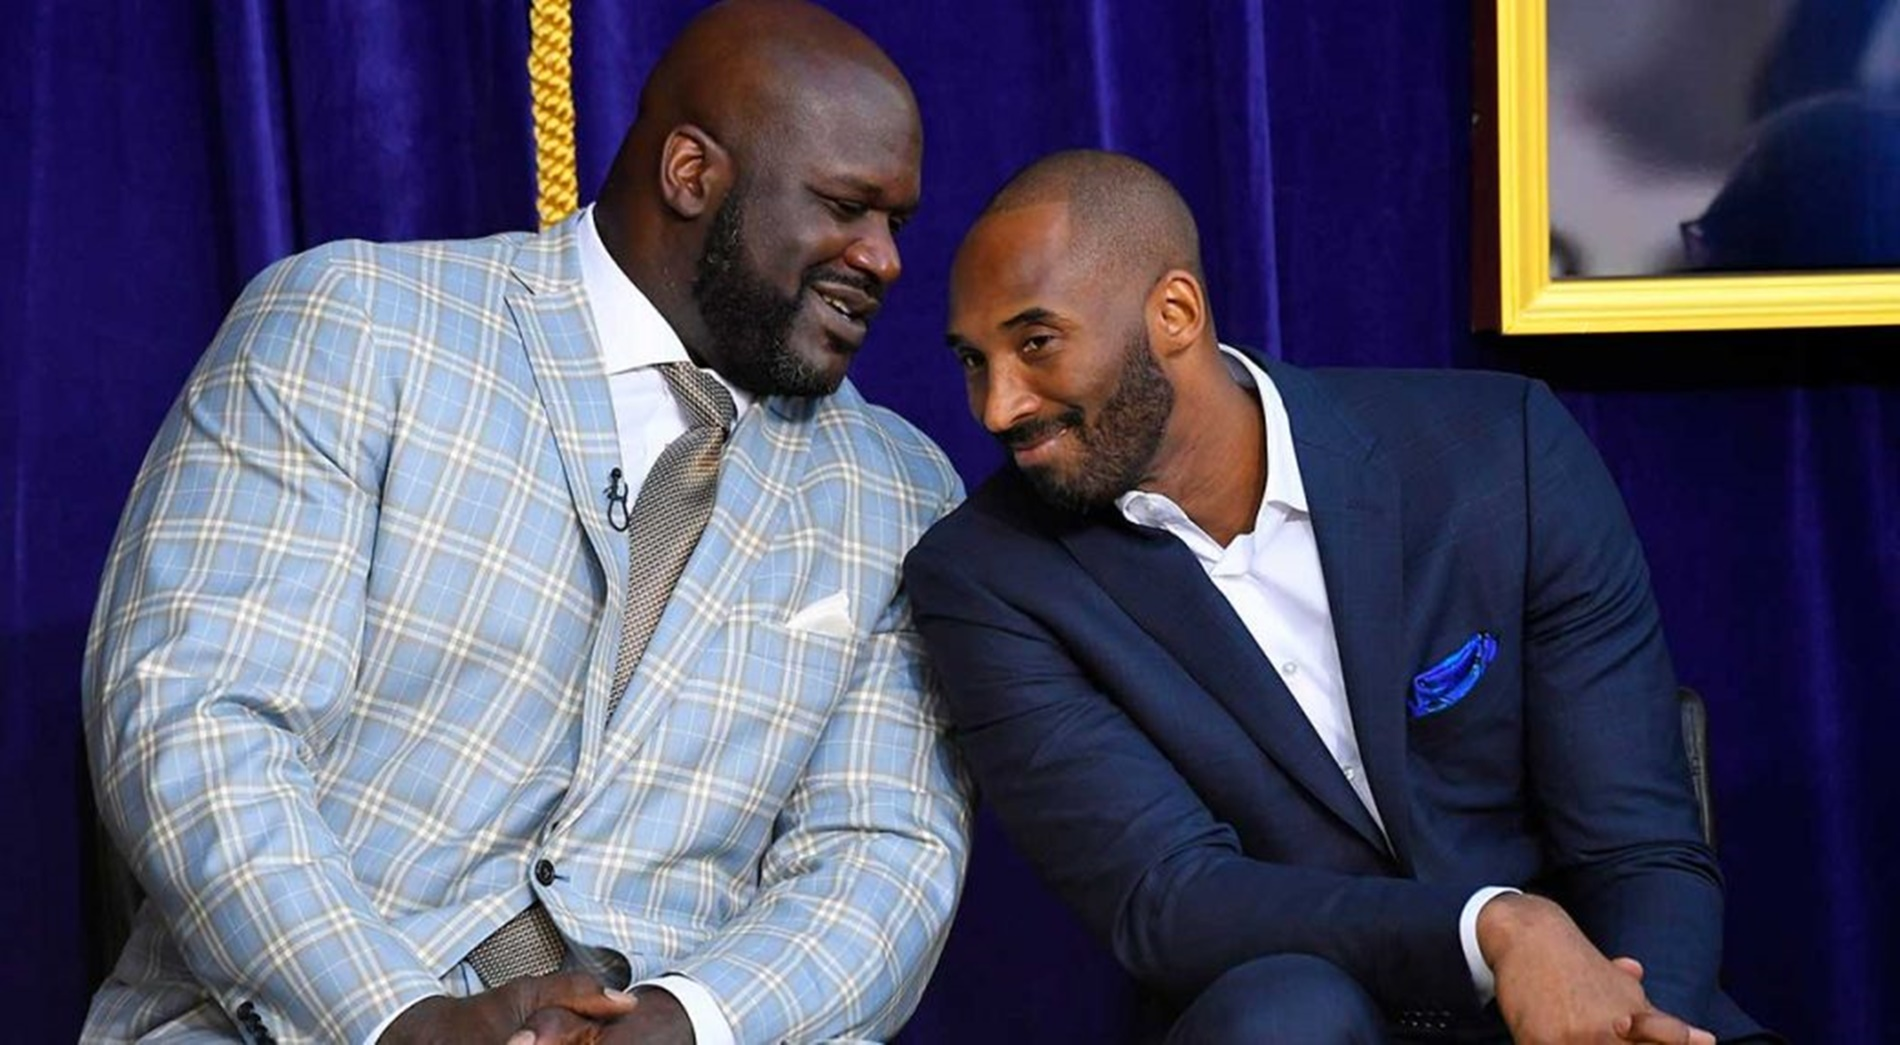 shaquille-oneal-and-kobe-bryants-daughter-celebrated-their-13th-birthdays-on-the-same-day-see-their-beautiful-pictures-and-find-out-why-fans-say-they-are-future-wnba-stars